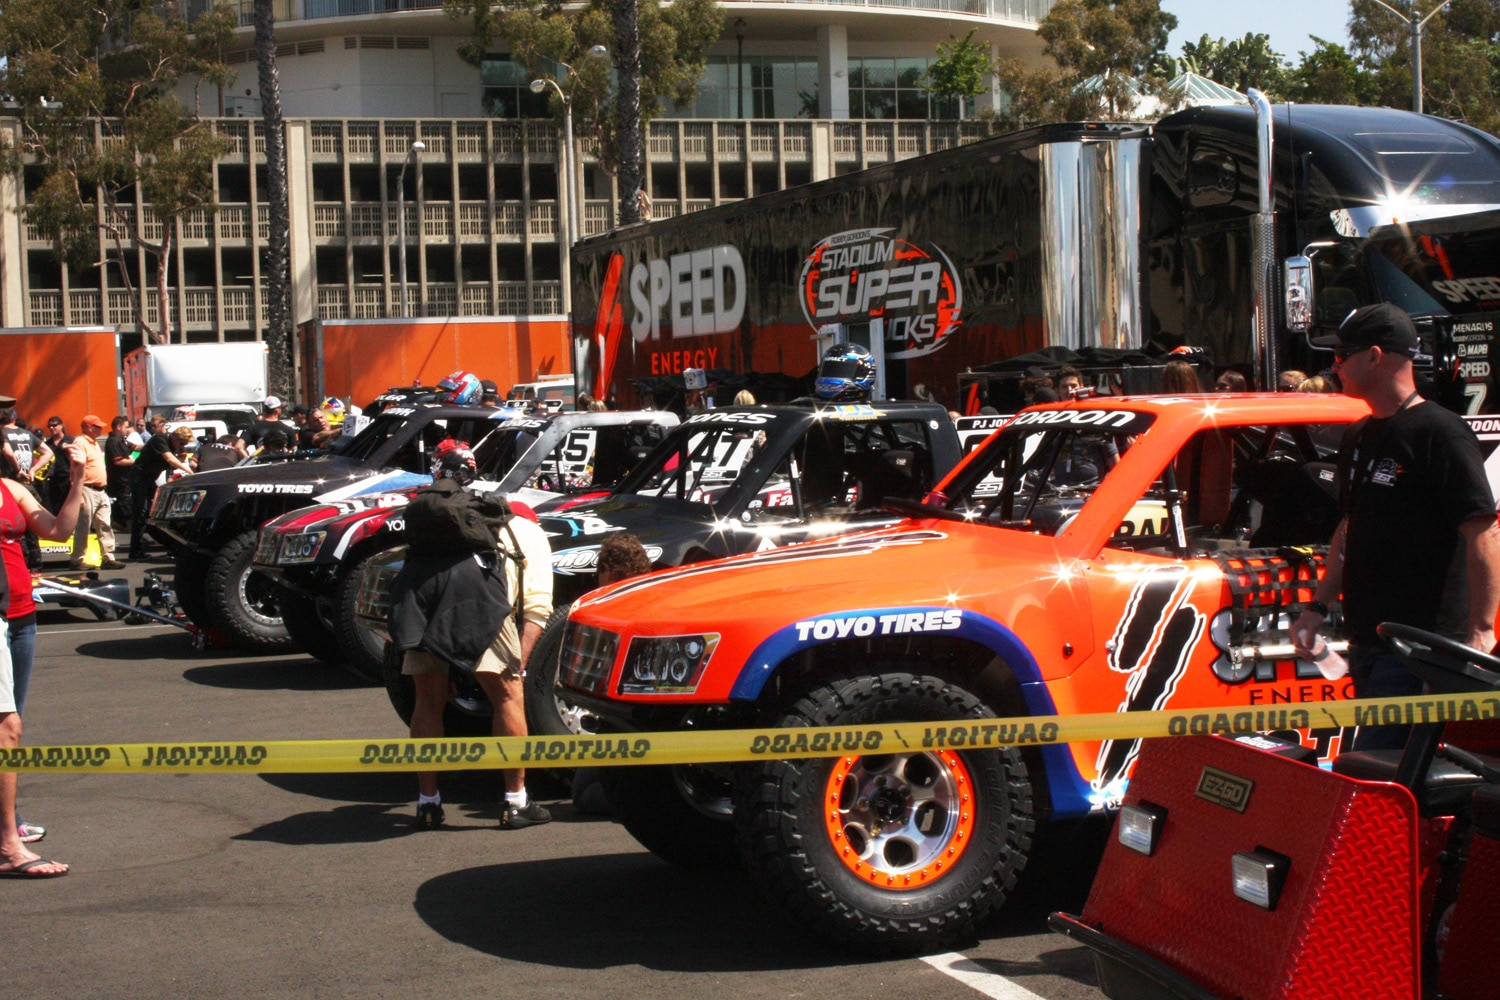 1304OR 09+Robby Gordon SST Stadium Super Trucks 2013 Long Beach Grand Prix pits